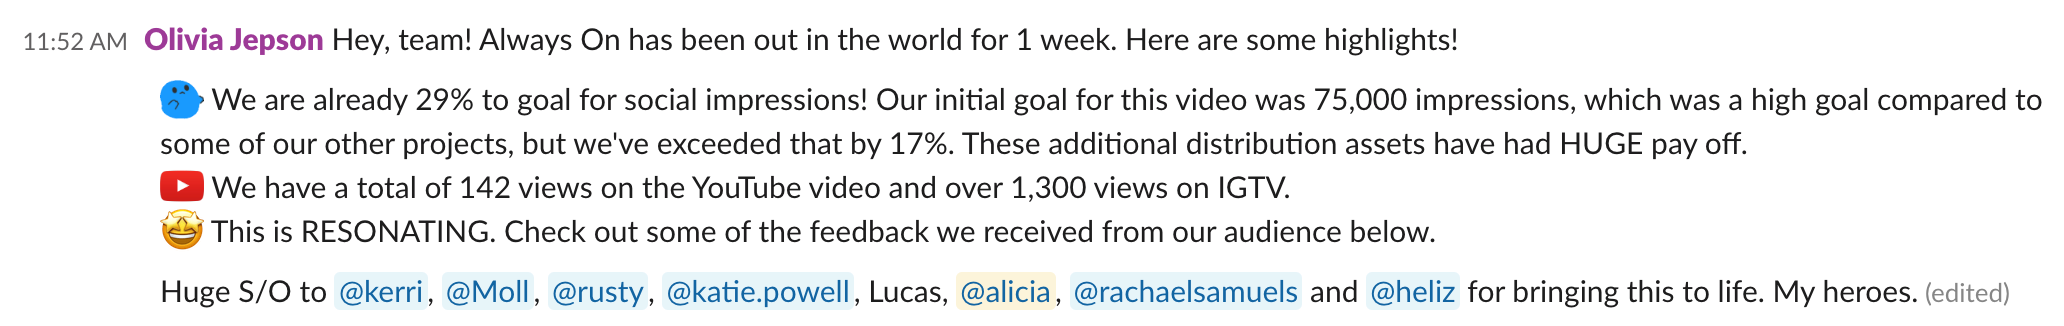 Slack message sharing the first week of social results for a video campaign